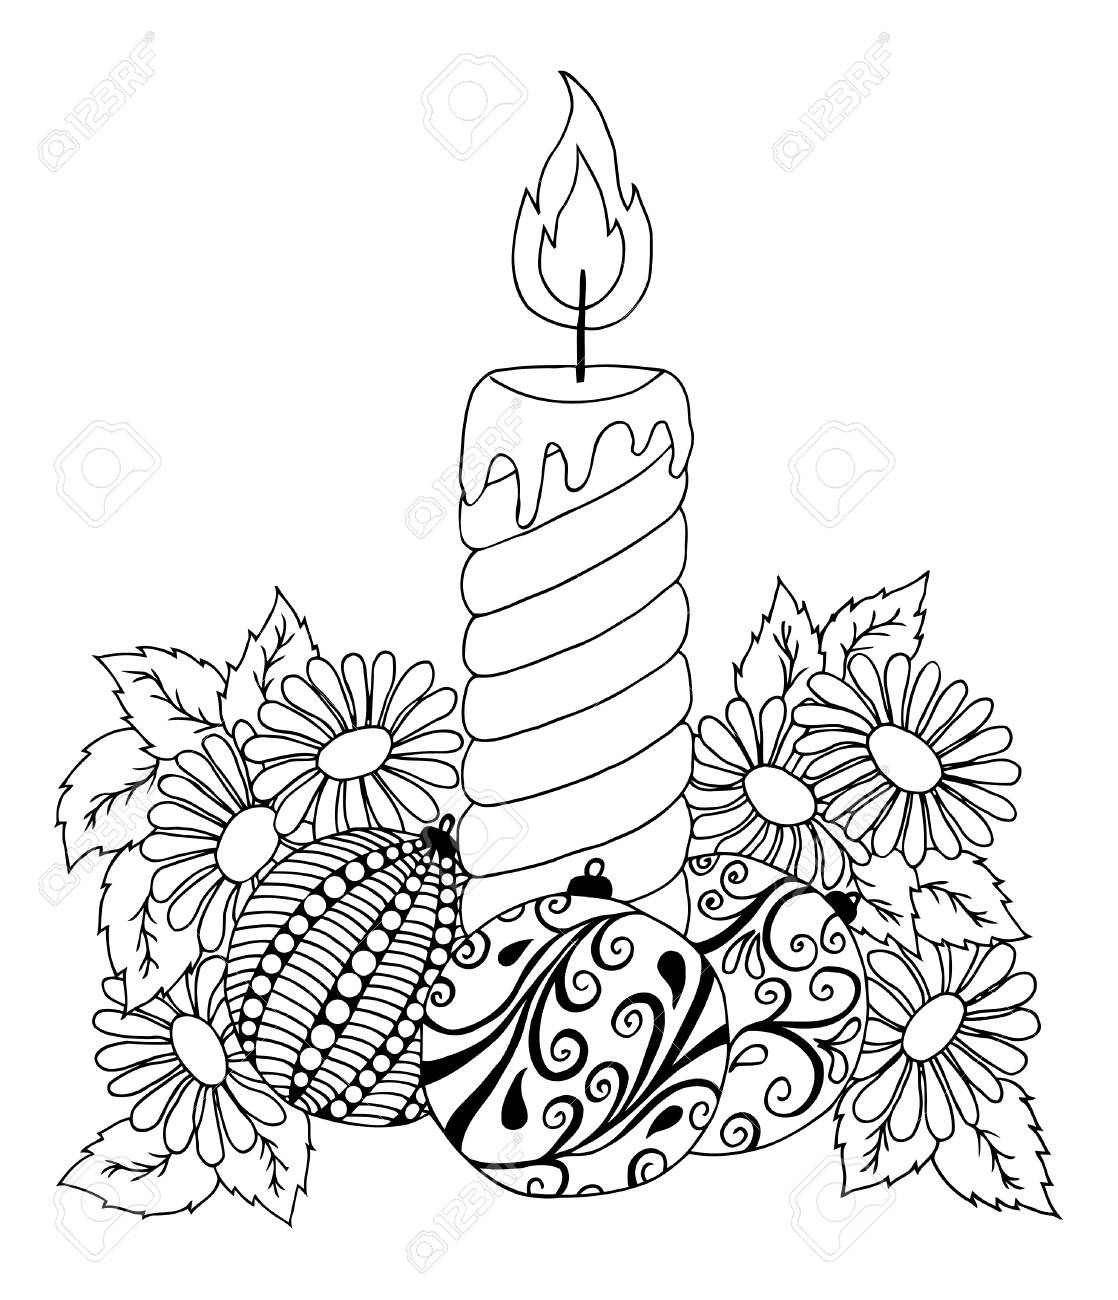 1118x1300 Illustration New Year Candle In Flowers. Doodle Drawing